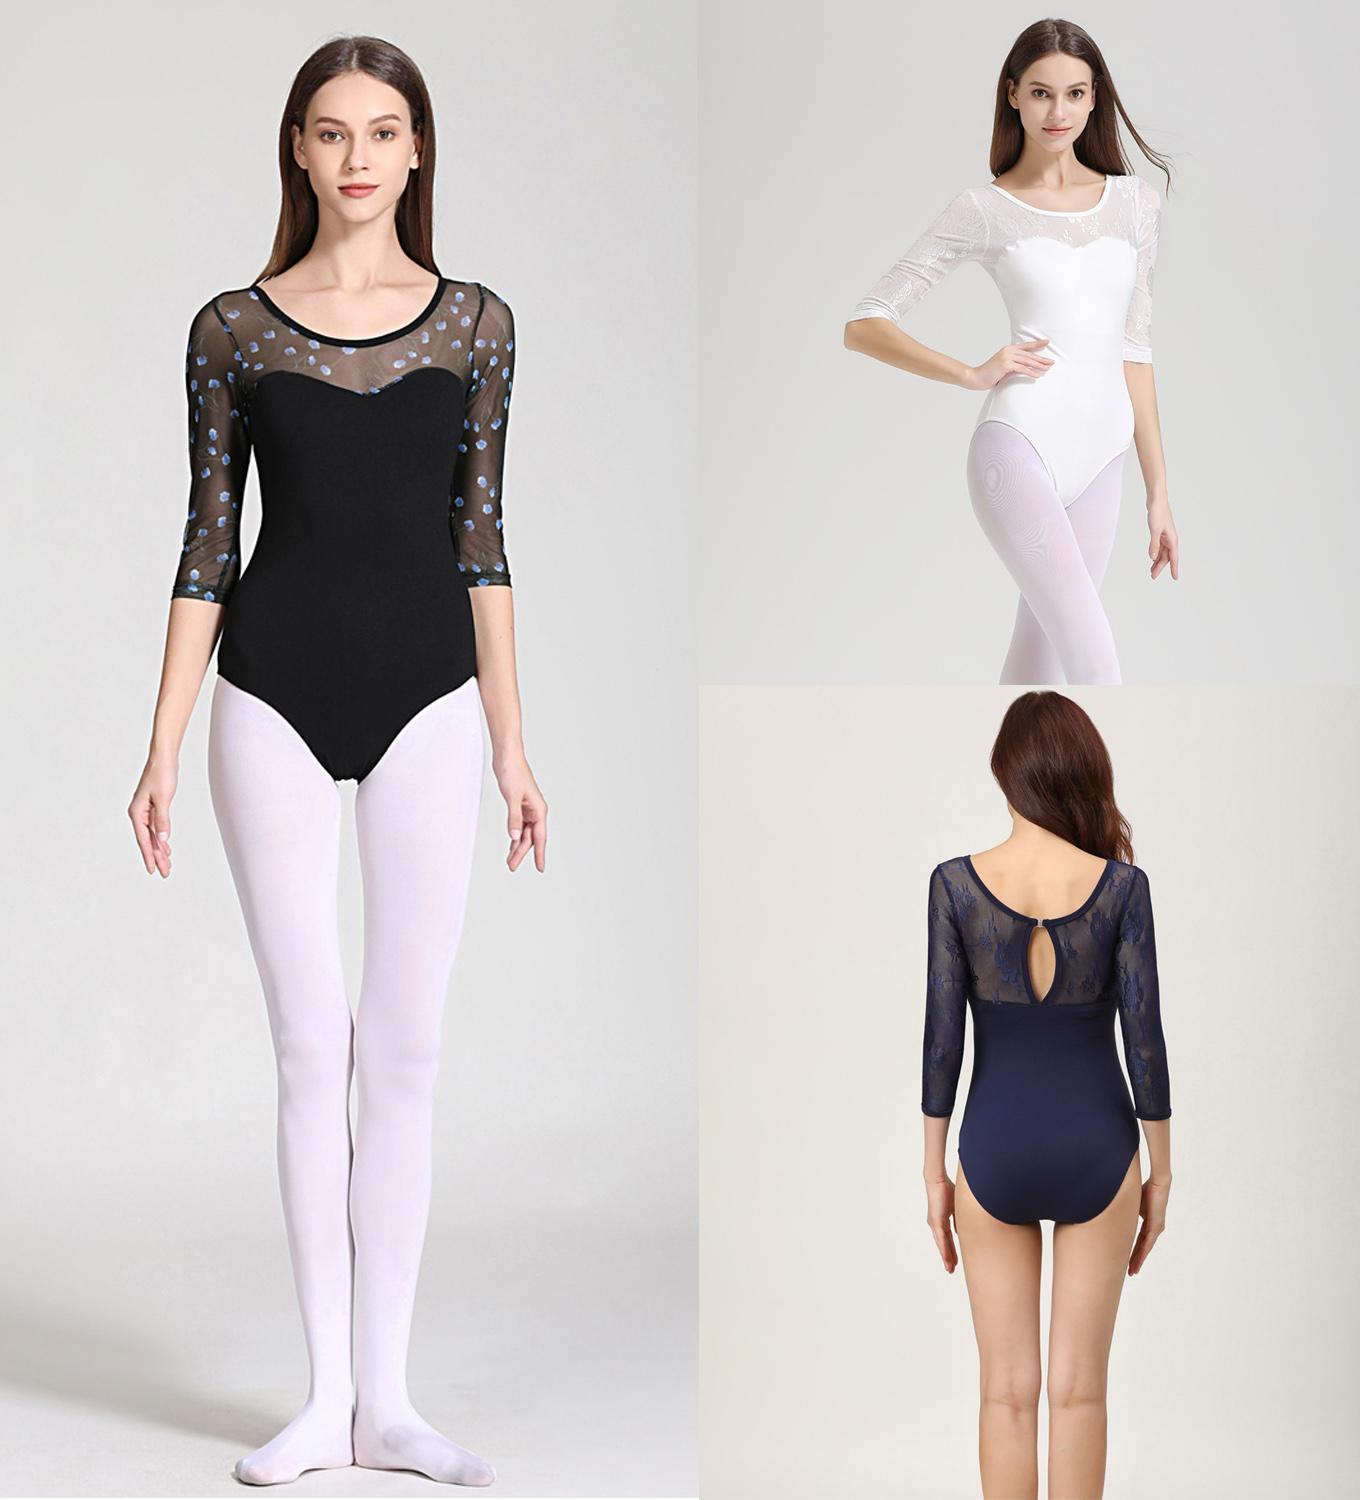 Adult Ballet Costume High Quality Medium Lace Sleeve Practice Dancing Leotards Women Lace Gymnastics Ballet Coverall